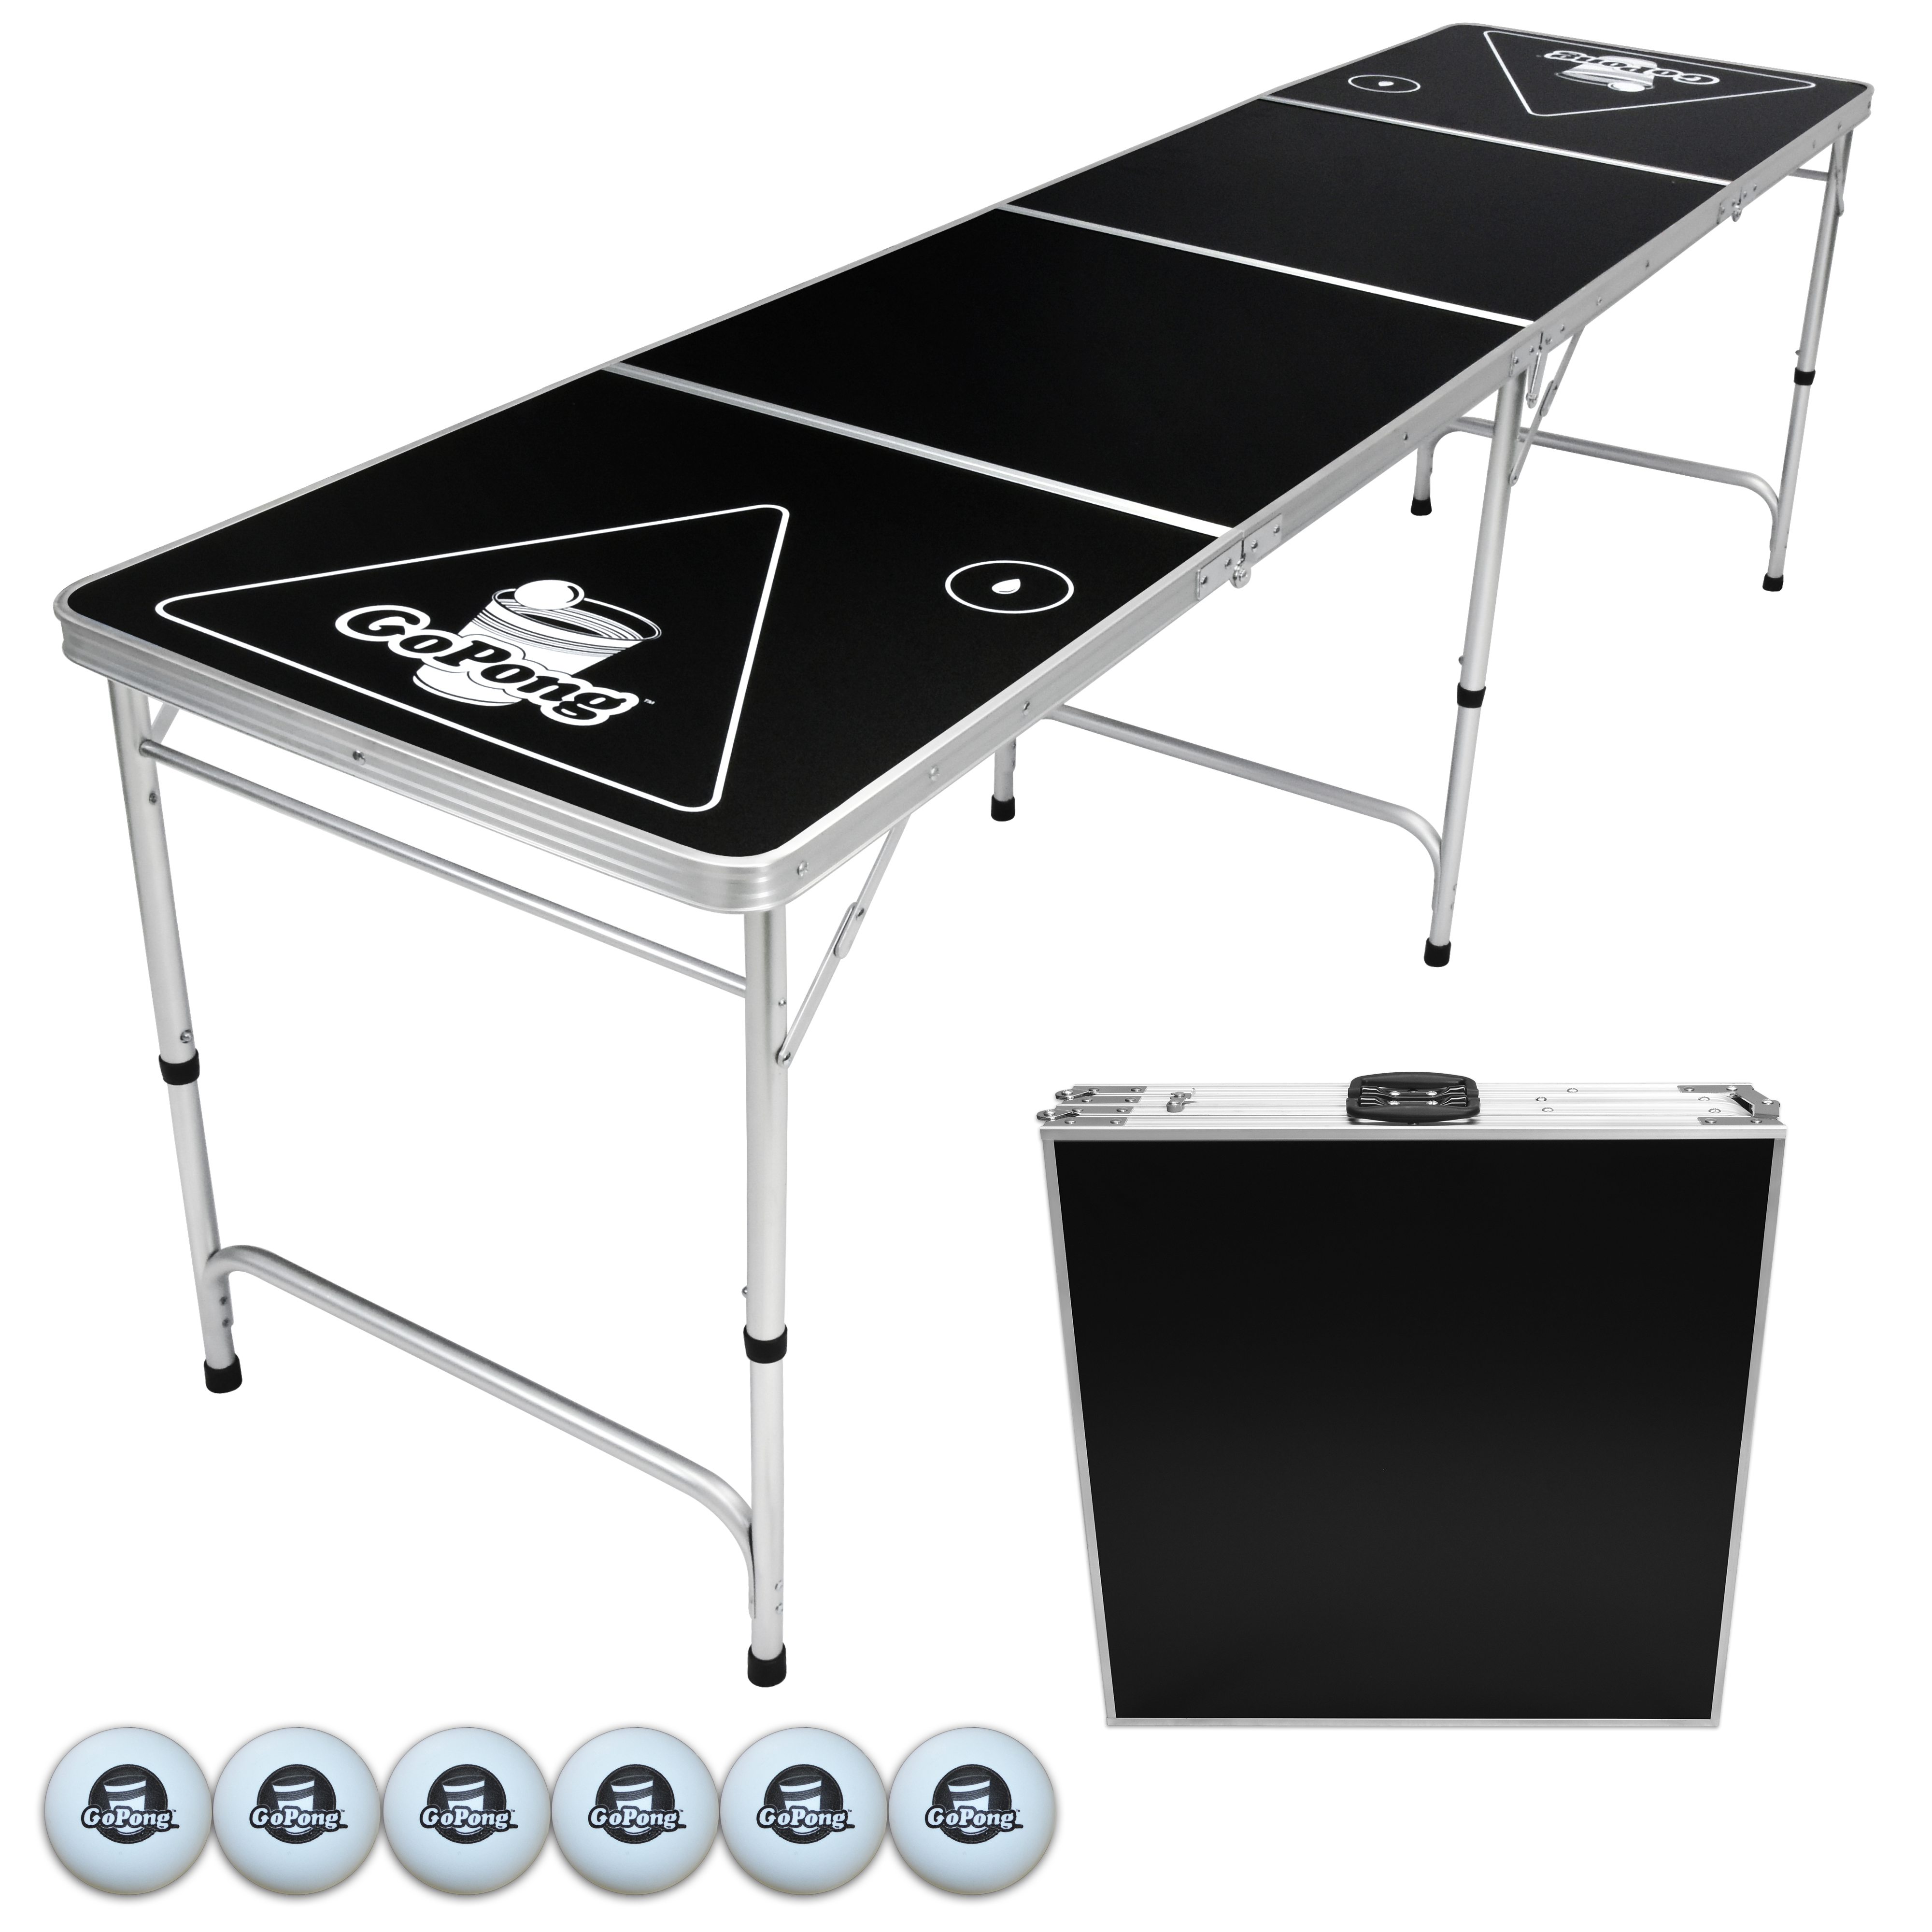 GoPong 8' Portable Folding Beer Pong/Flip Cup Table, 6 Balls Included